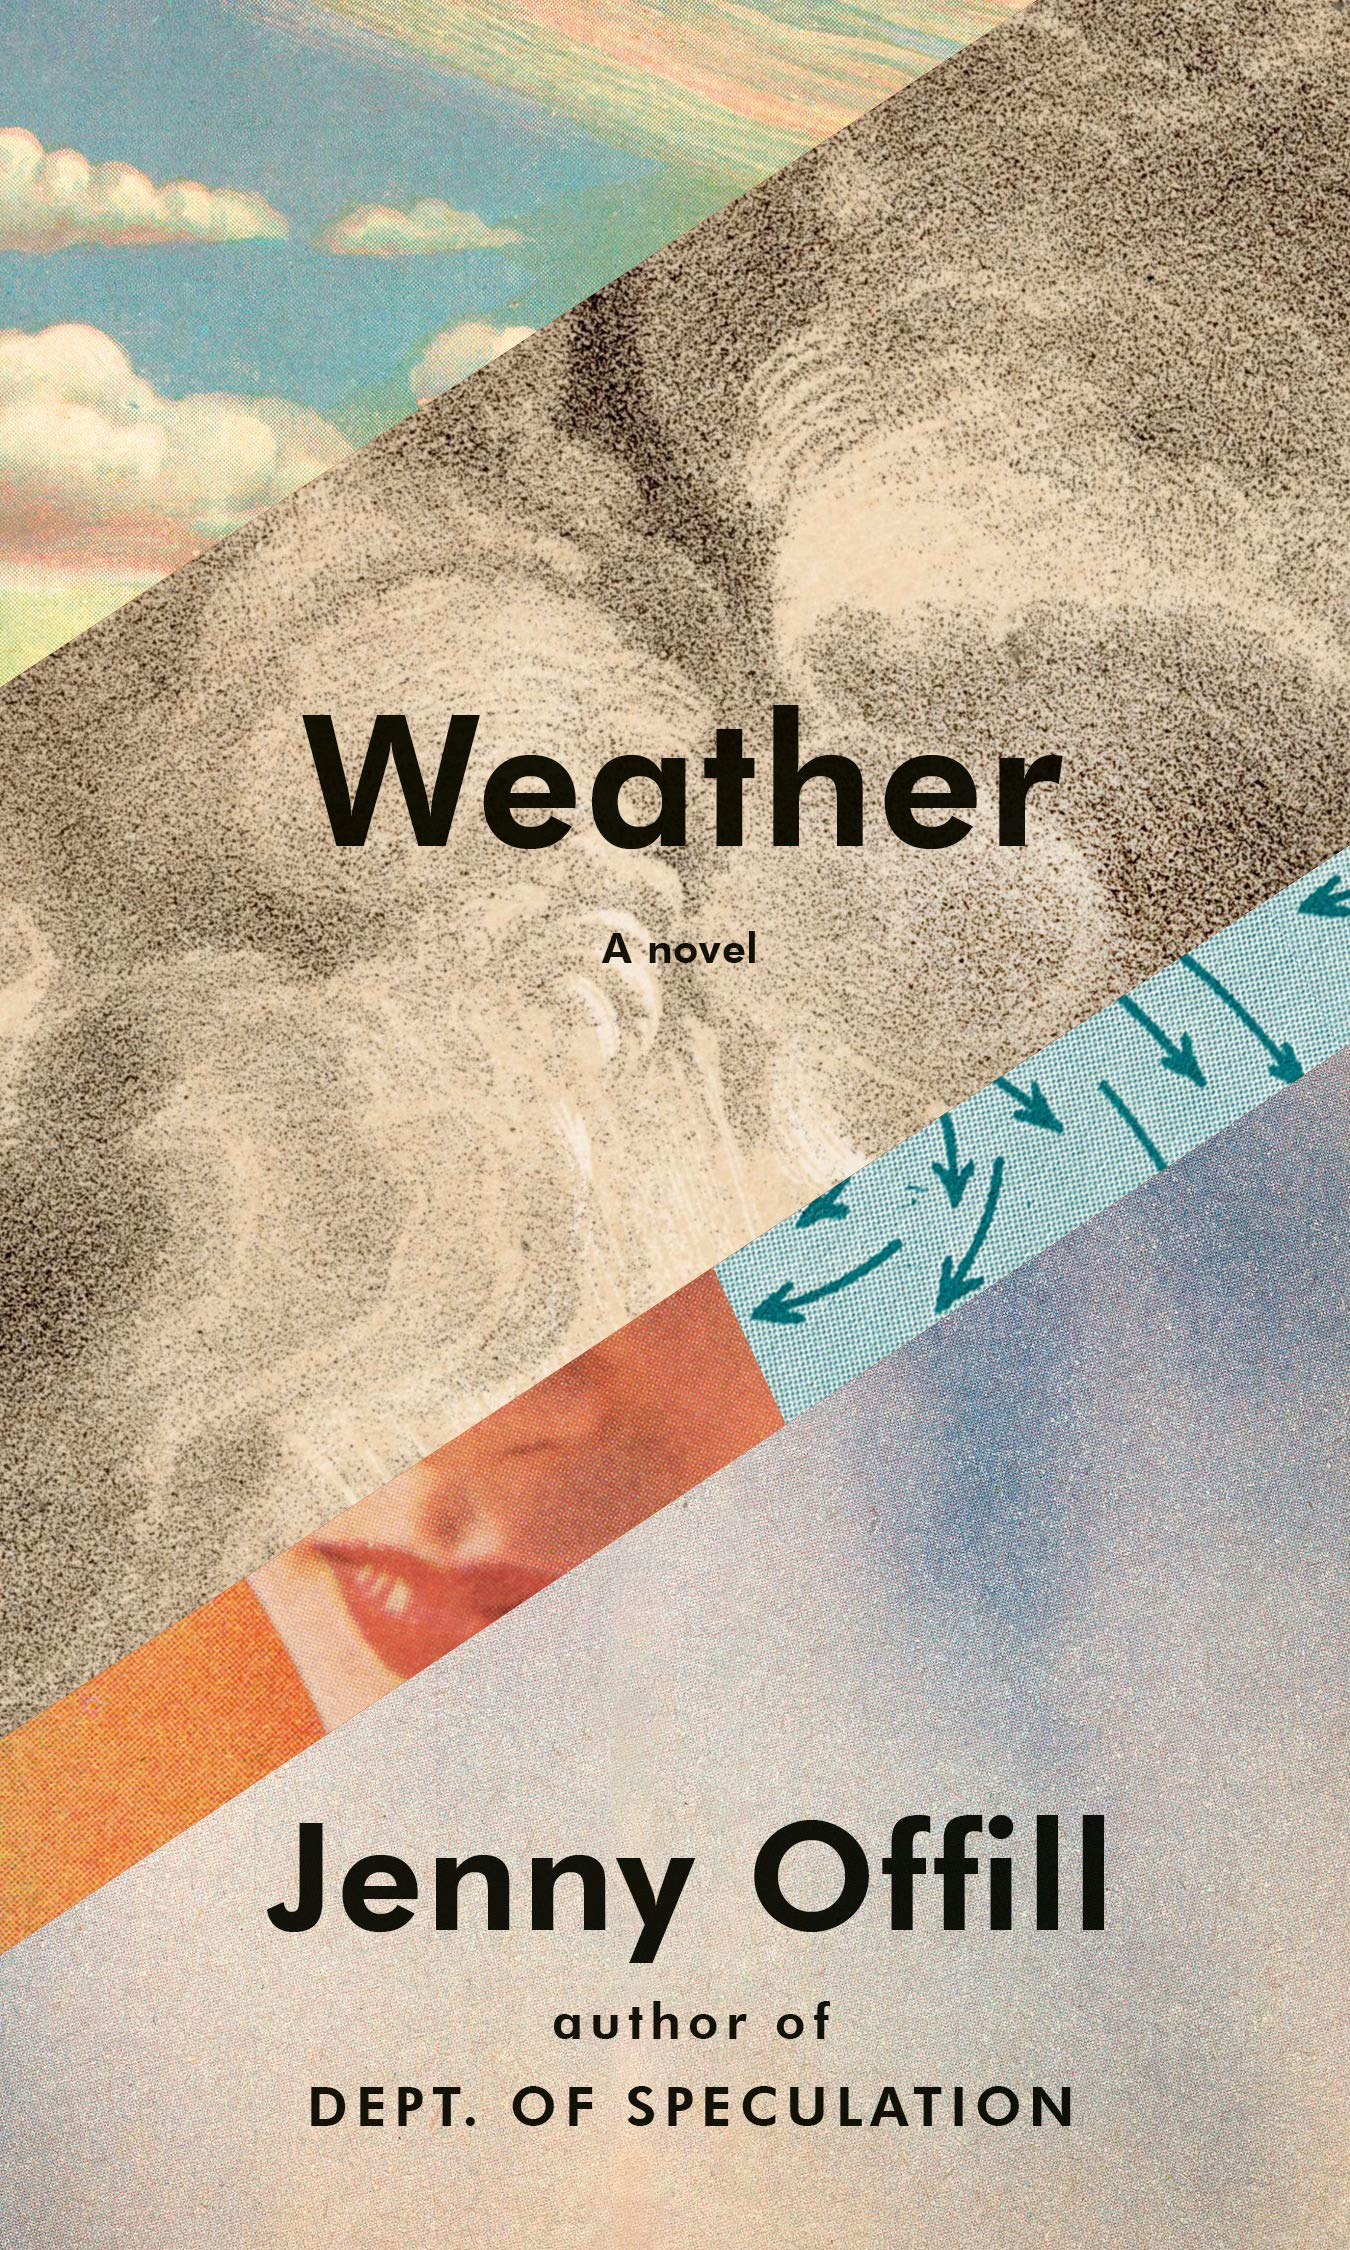 Amazon.com: Weather: A novel (9780385351102): Offill, Jenny: Books